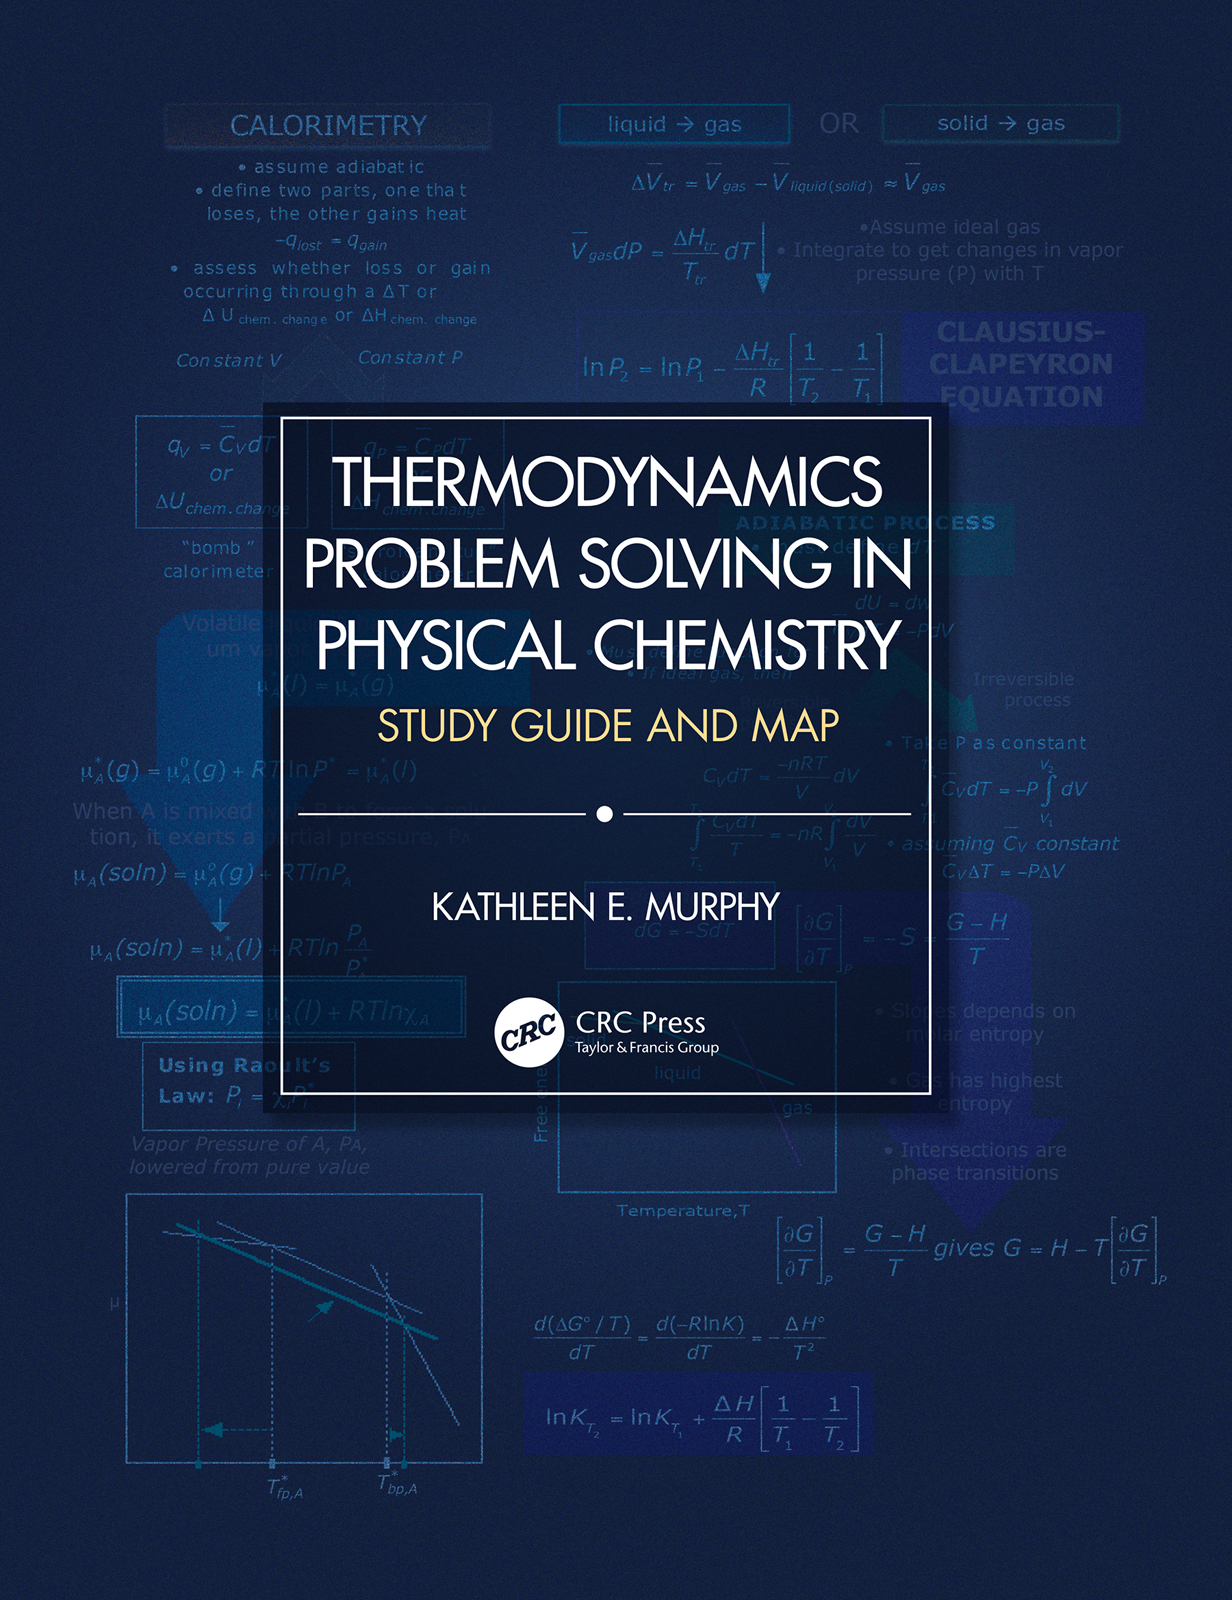 Thermodynamics Problem Solving in Physical Chemistry